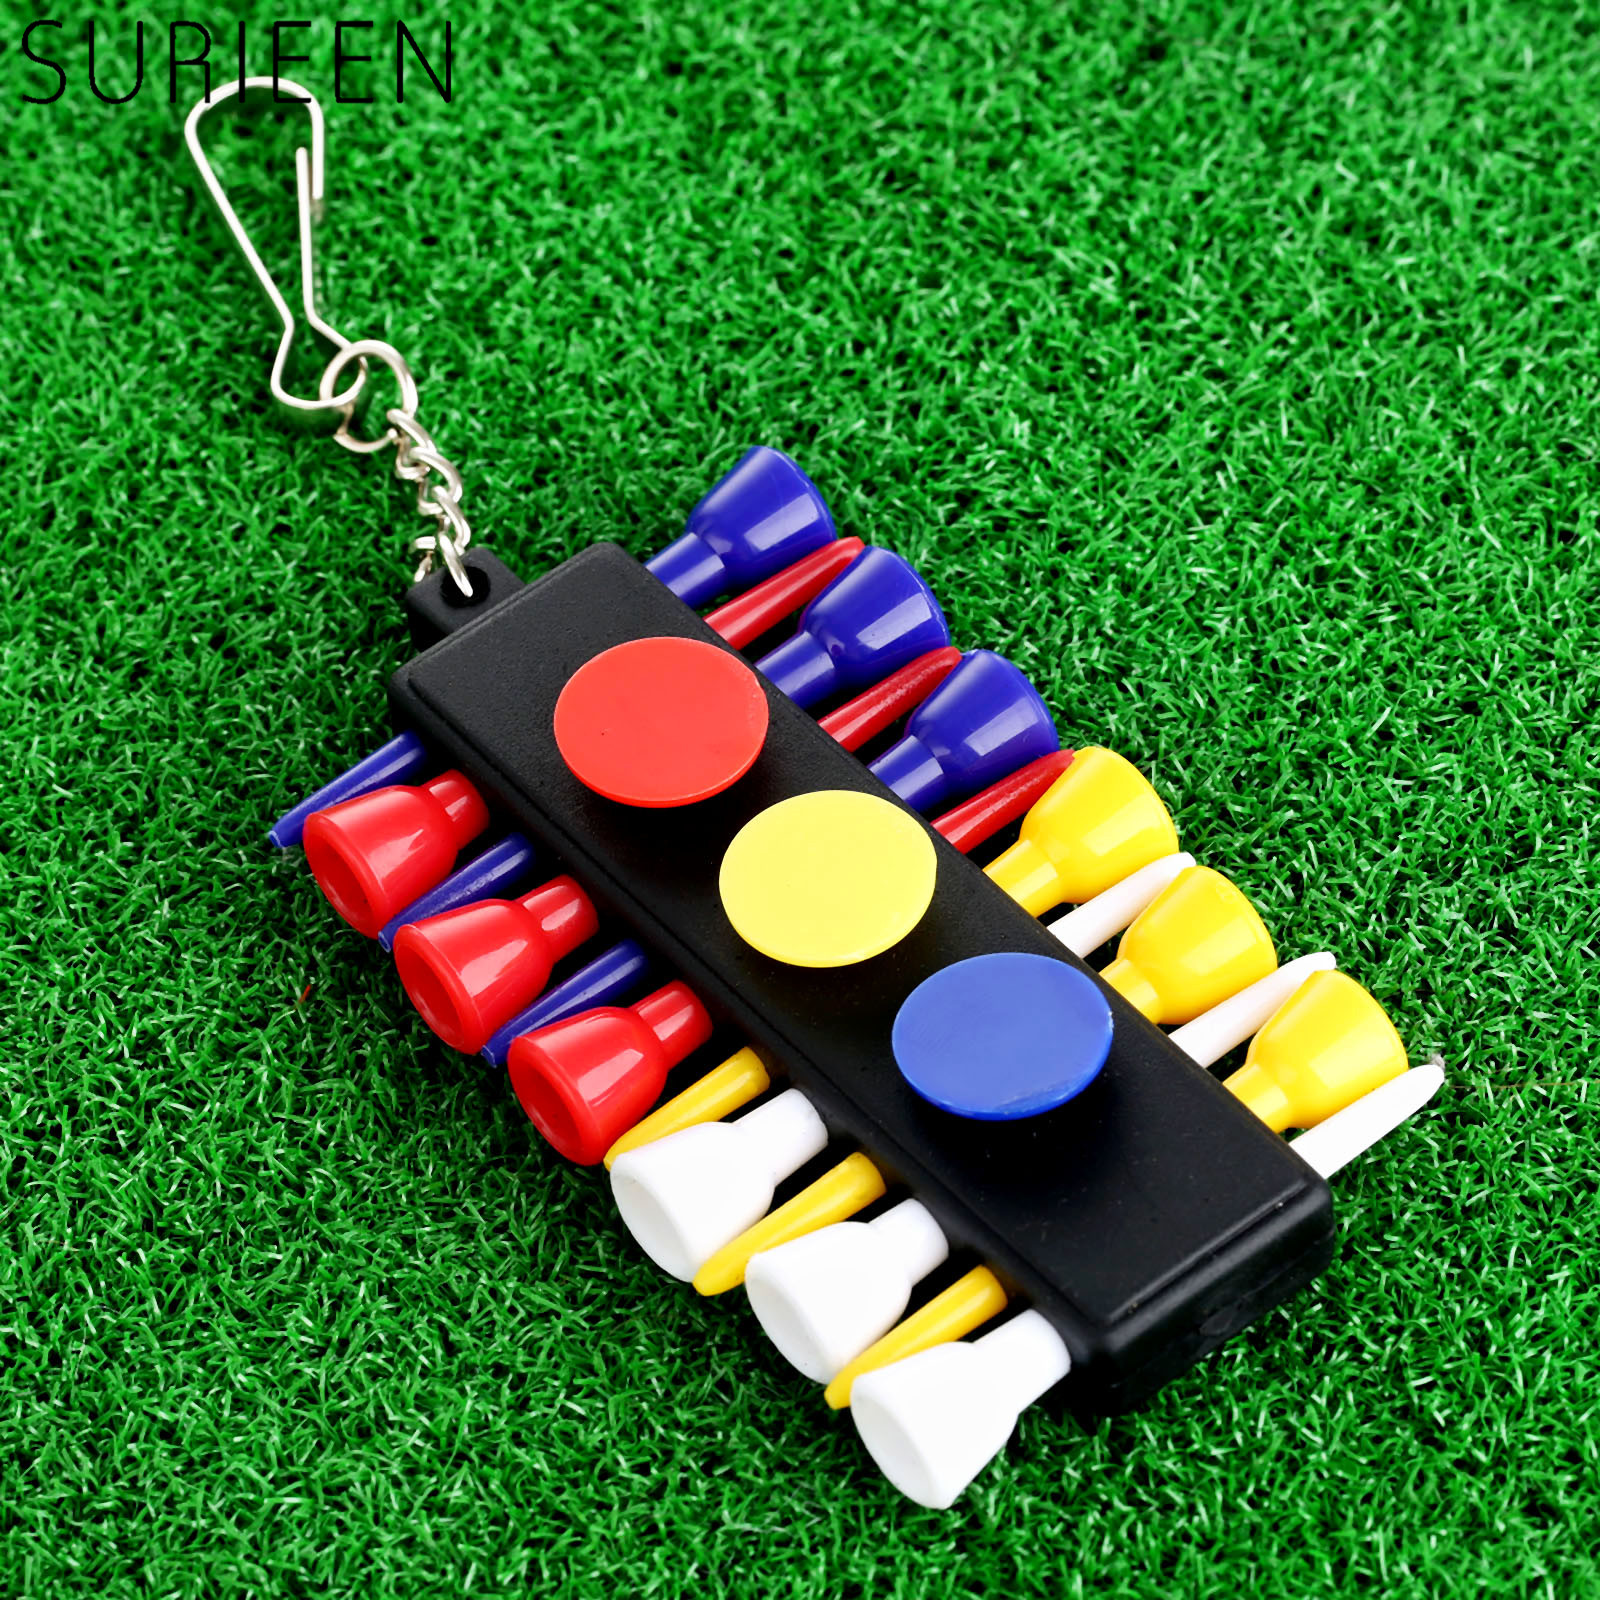 1 Set Plastic Golf Tees Holder Stand Carrier With 12 Pcs Rubber Golf Ball Tees & Pocket Keychain Outdoor Golf Training Aids